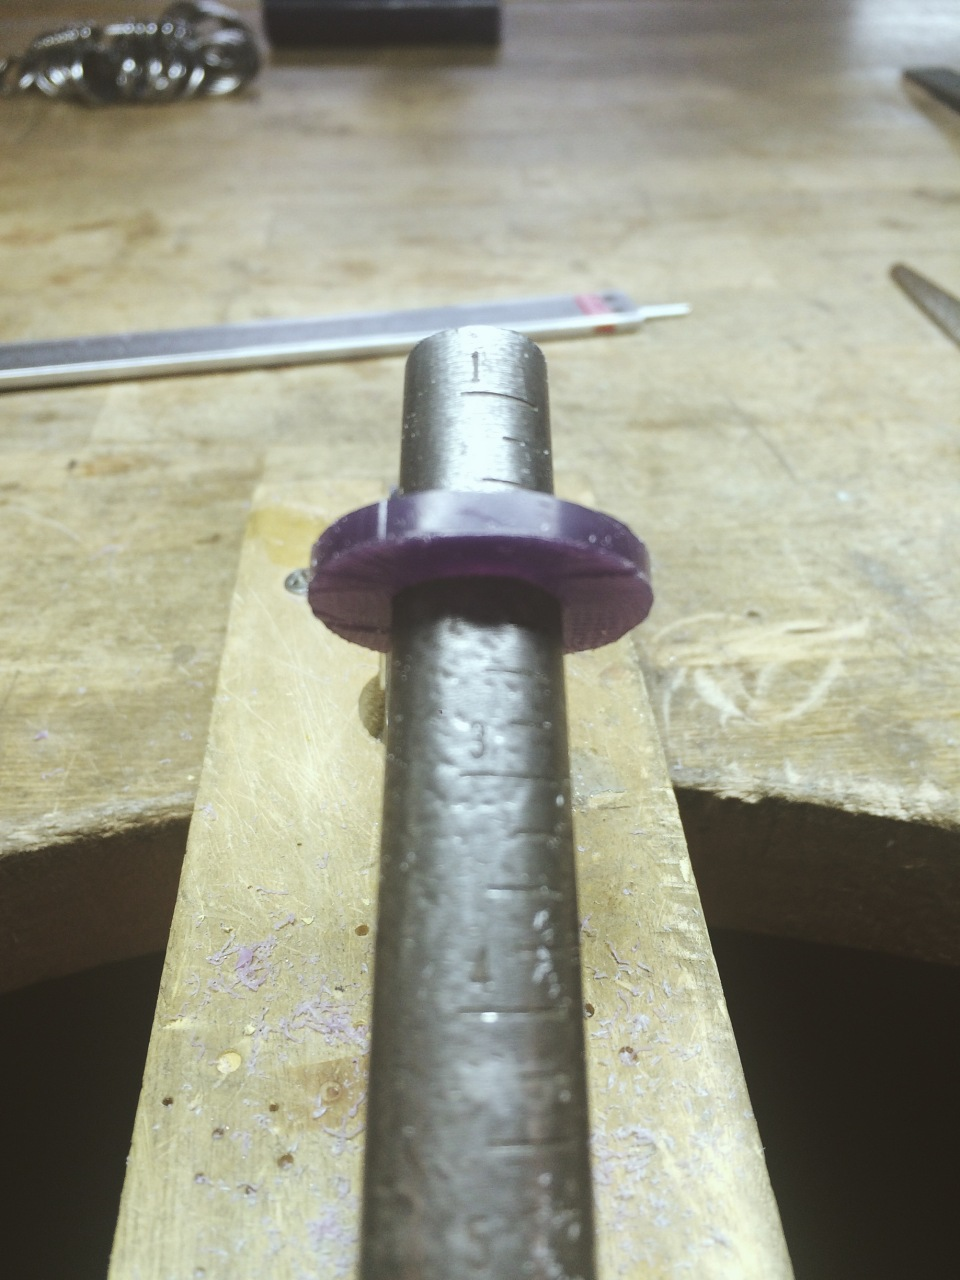 8. Using a ring mandrel, continuously check your work while opening up the size. Make sure to push the piece gently down the mandrel to ensure accurate sizing.